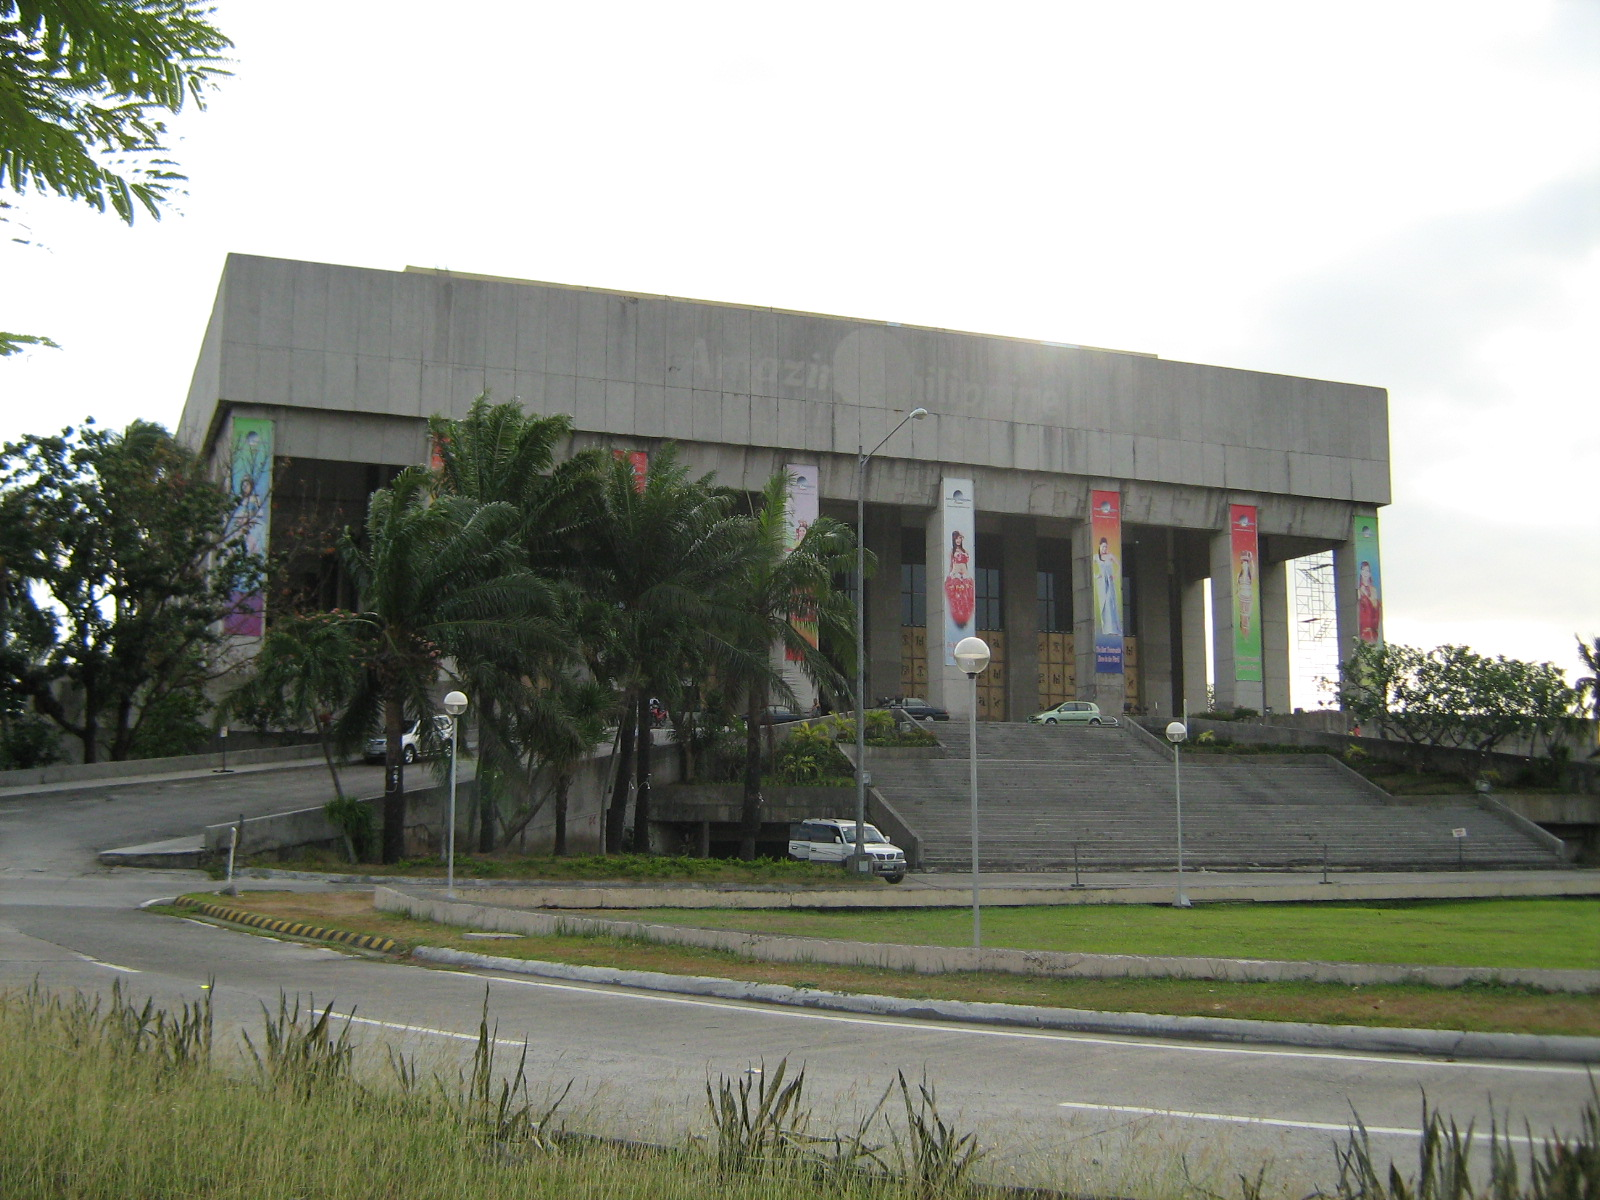 The Manila Film Center today